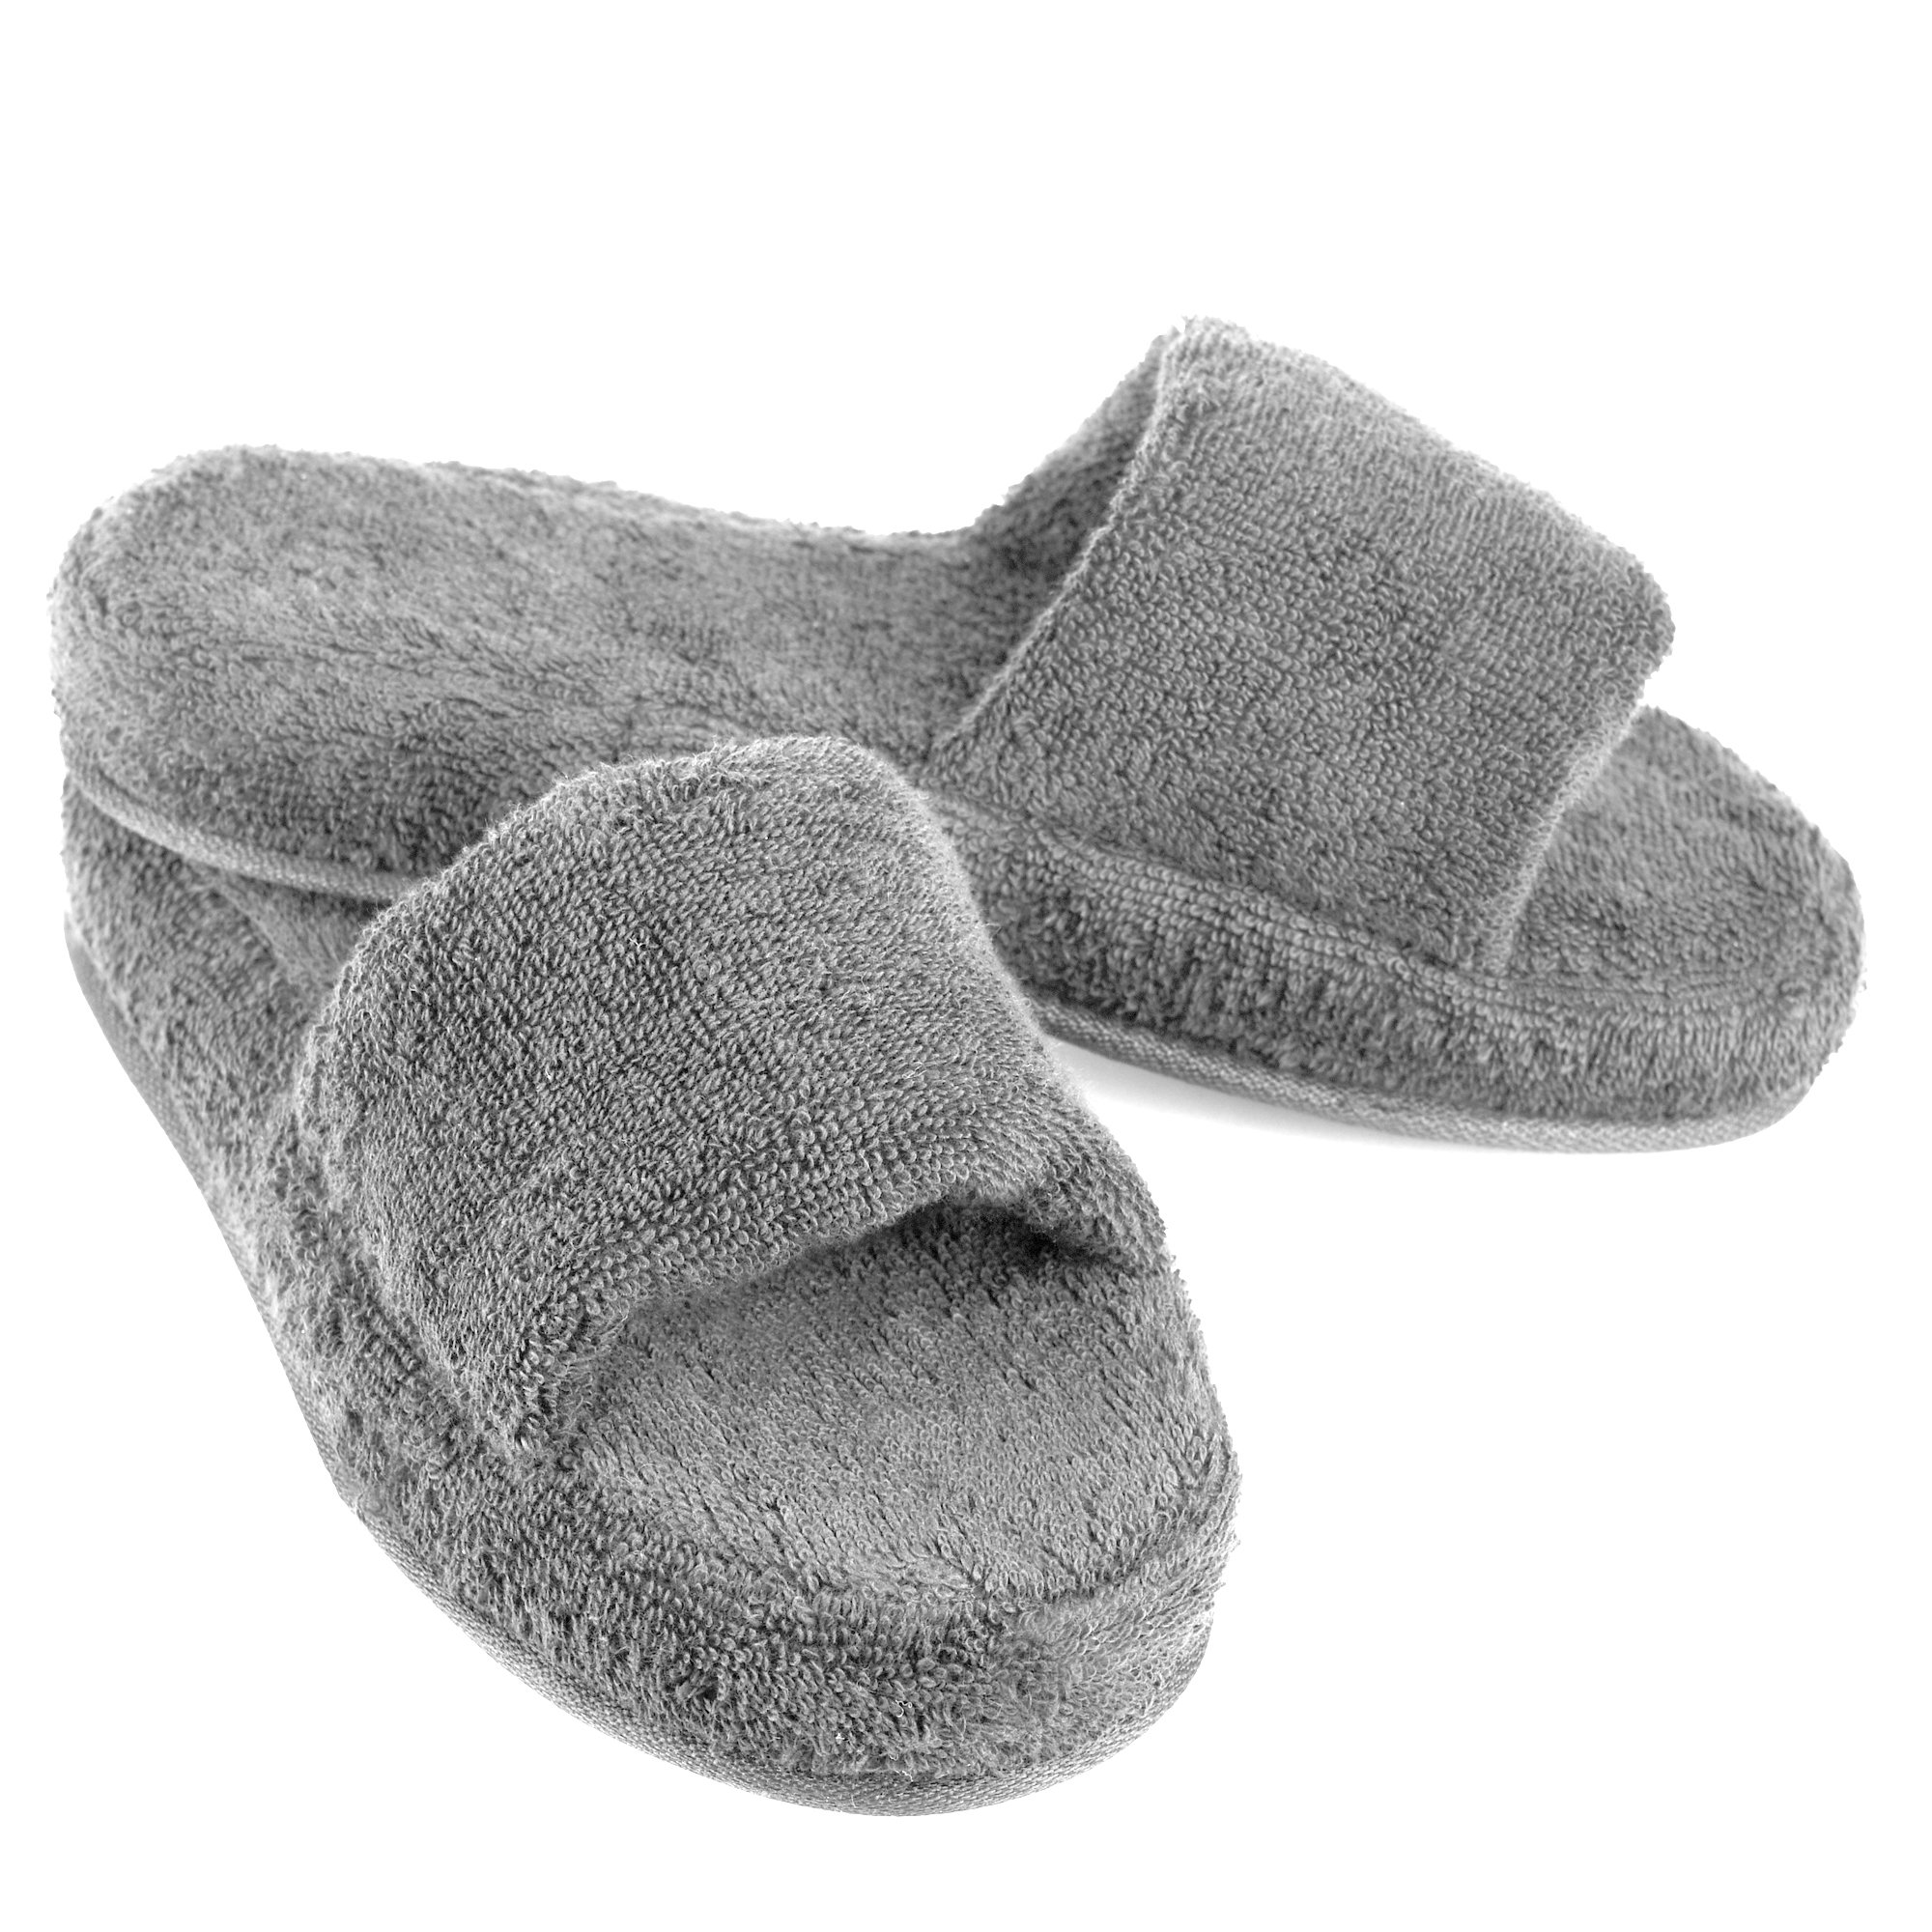 EuropeanSoftest Women Cozy Memory Foam 100% Turkish Terry Cotton Cloth Open Toe Spa House Indoor Slipper (X-Large/11-12 B(M) US, Gray) by EuropeanSoftest